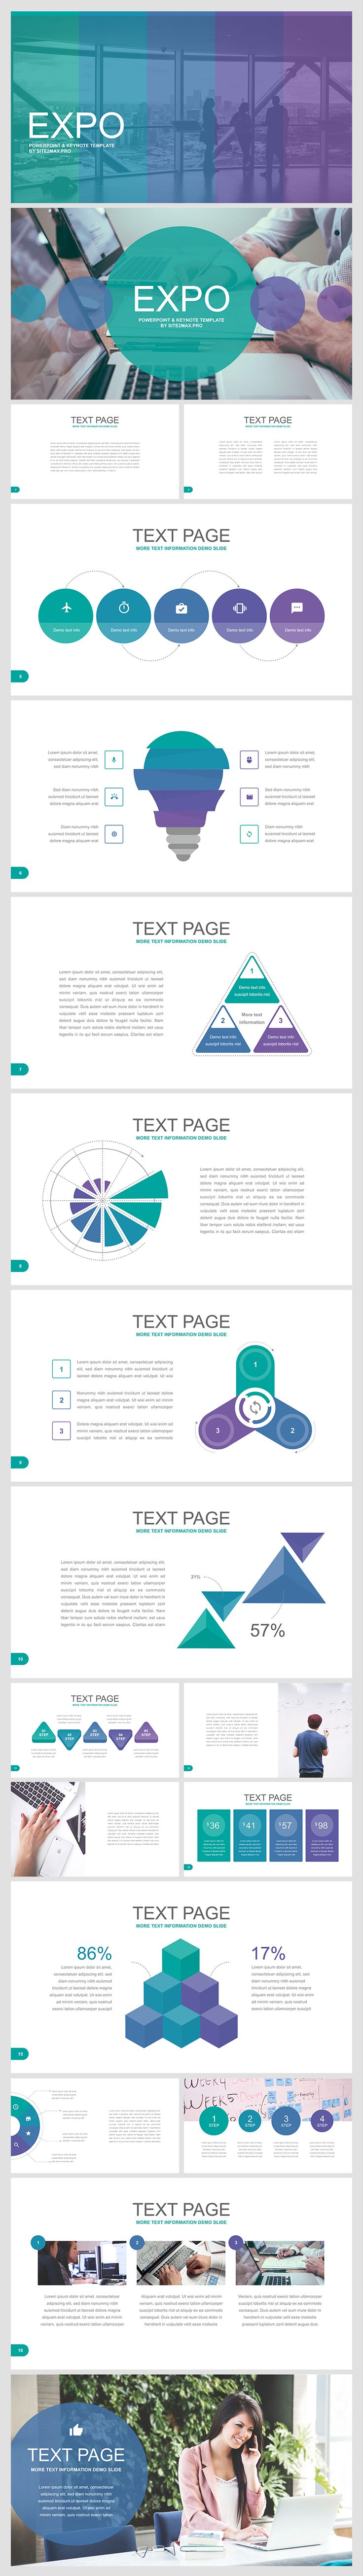 Main expo free powerpoint template